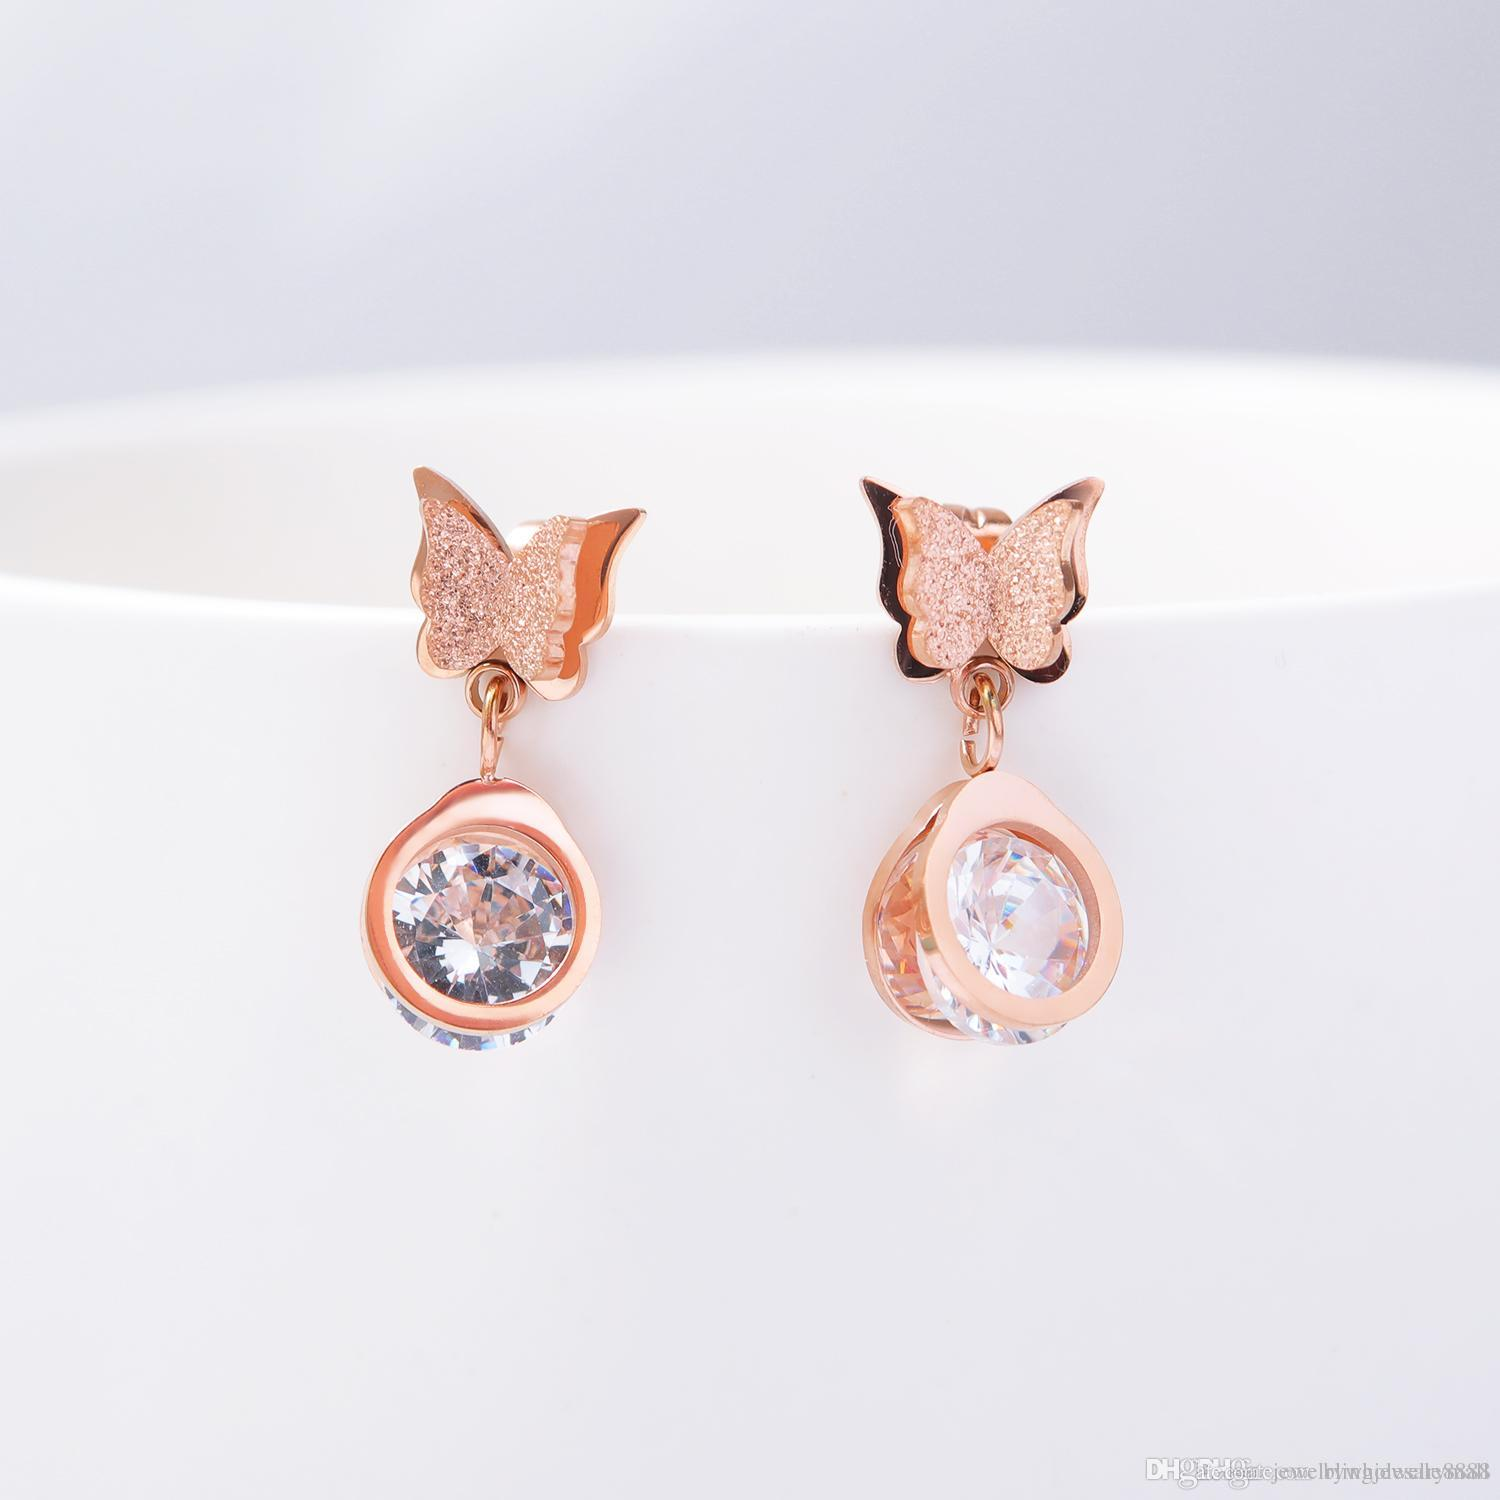 New Butterfly Stainless Steel Stud Earrings For Women Girls Rose Gold Frosted Double Butterfly Ear Studs Jewelry Gift RO470